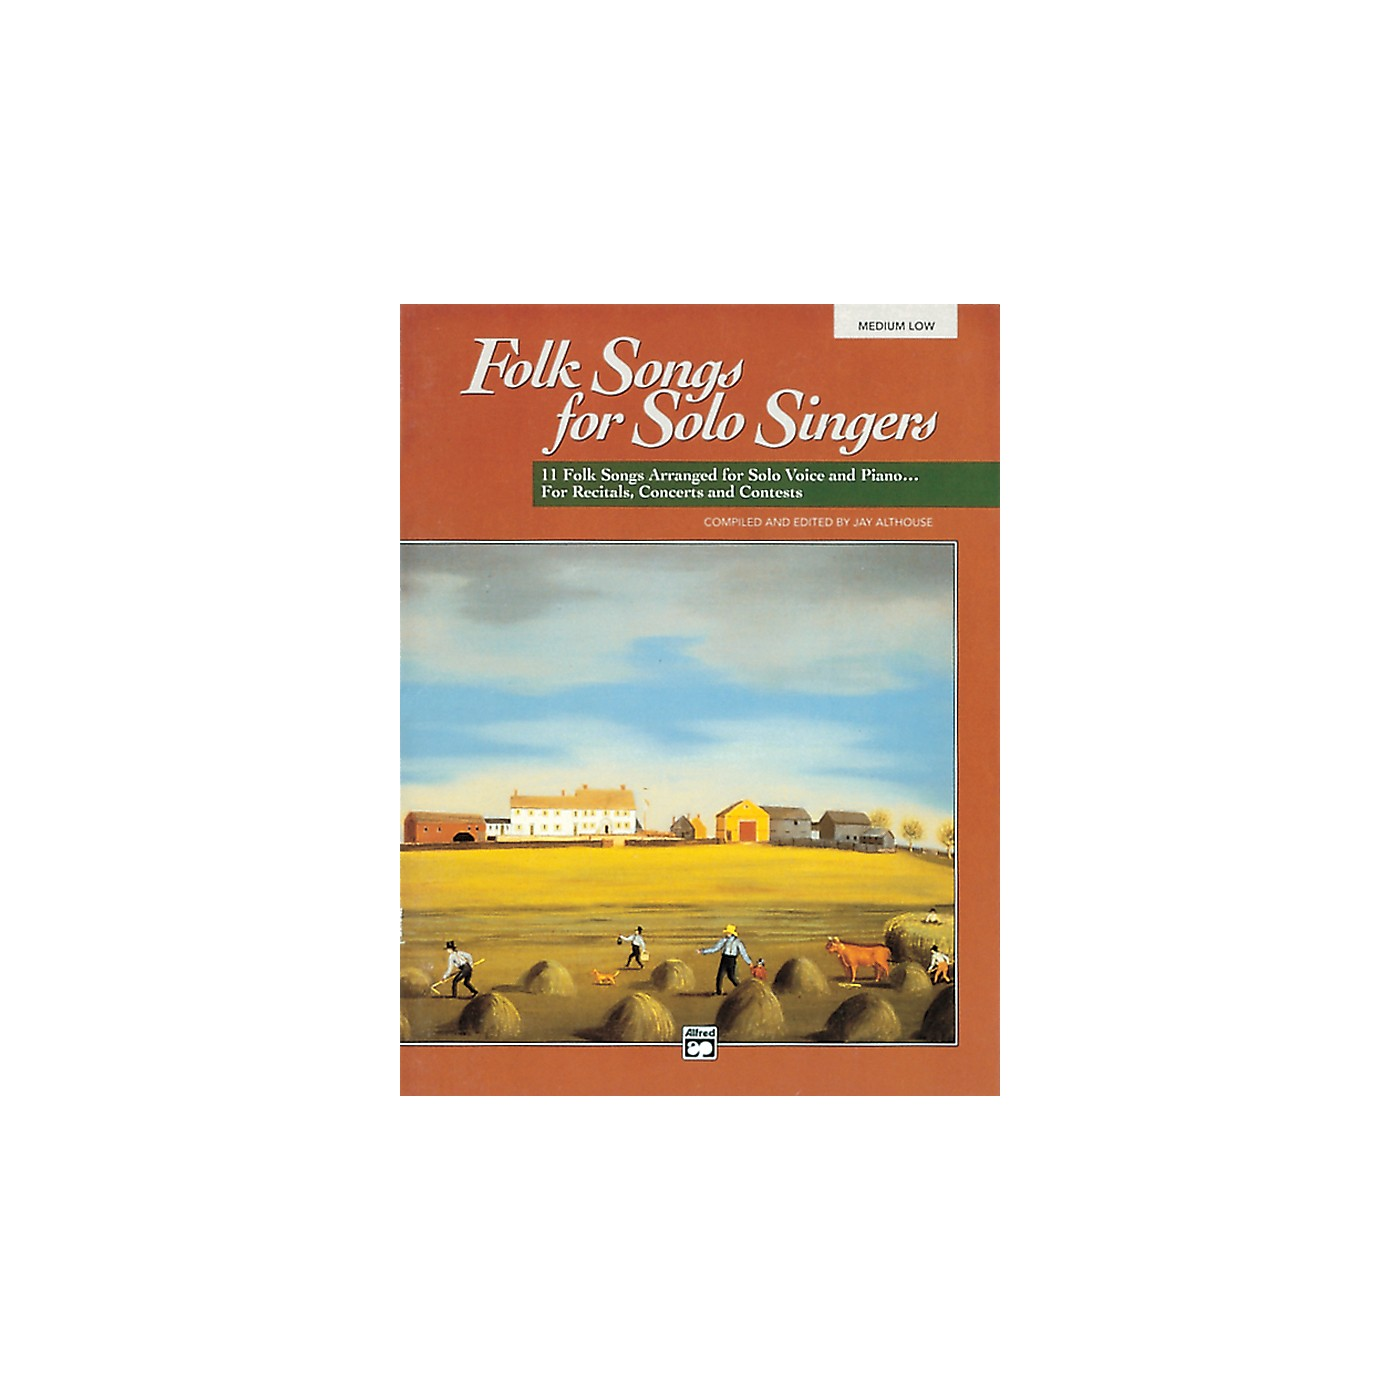 Alfred Folk Songs for Solo Singers Vol. 1 Book & CD (Medium Low) thumbnail